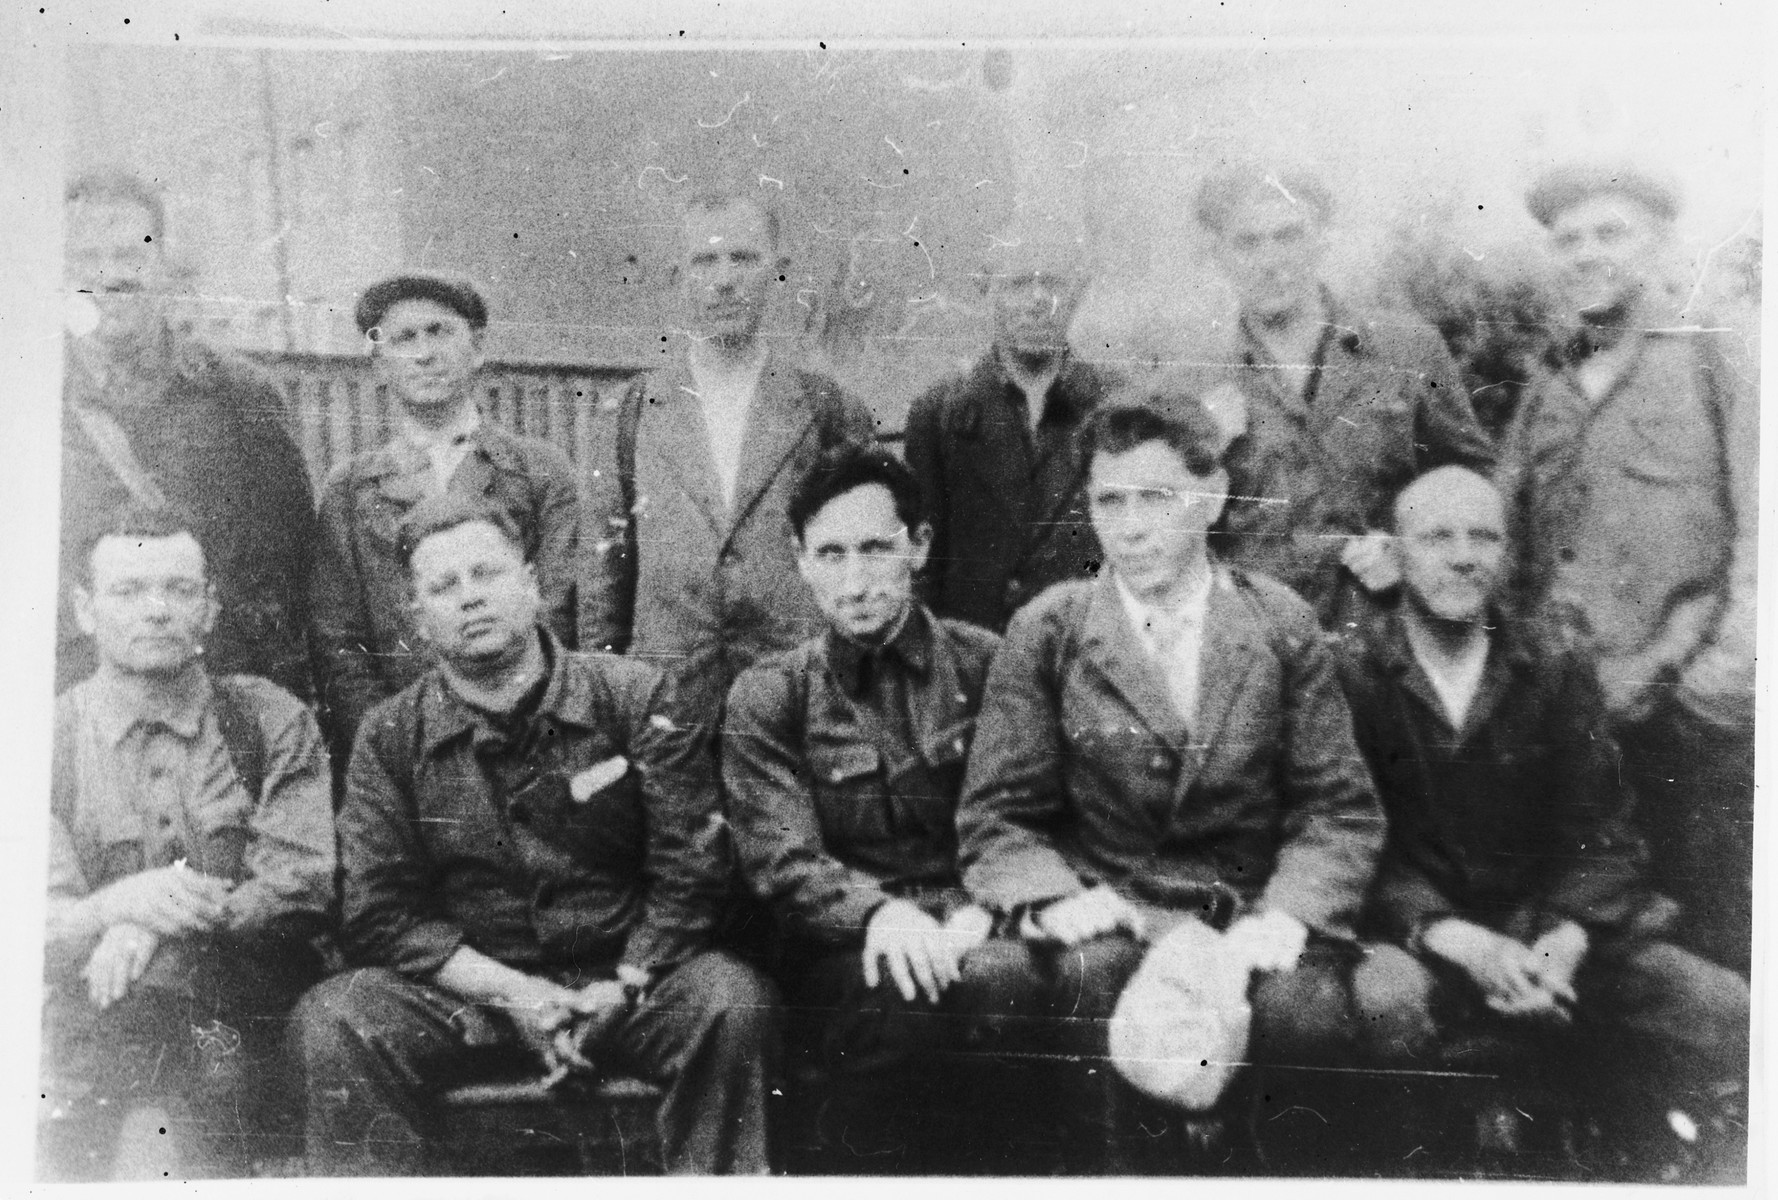 Group portrait of volunteers of the civil guard stationed in Khatnezha, outside of Leningrad.  Among those pictured is Ilya Schneidman (back row, second from the left).